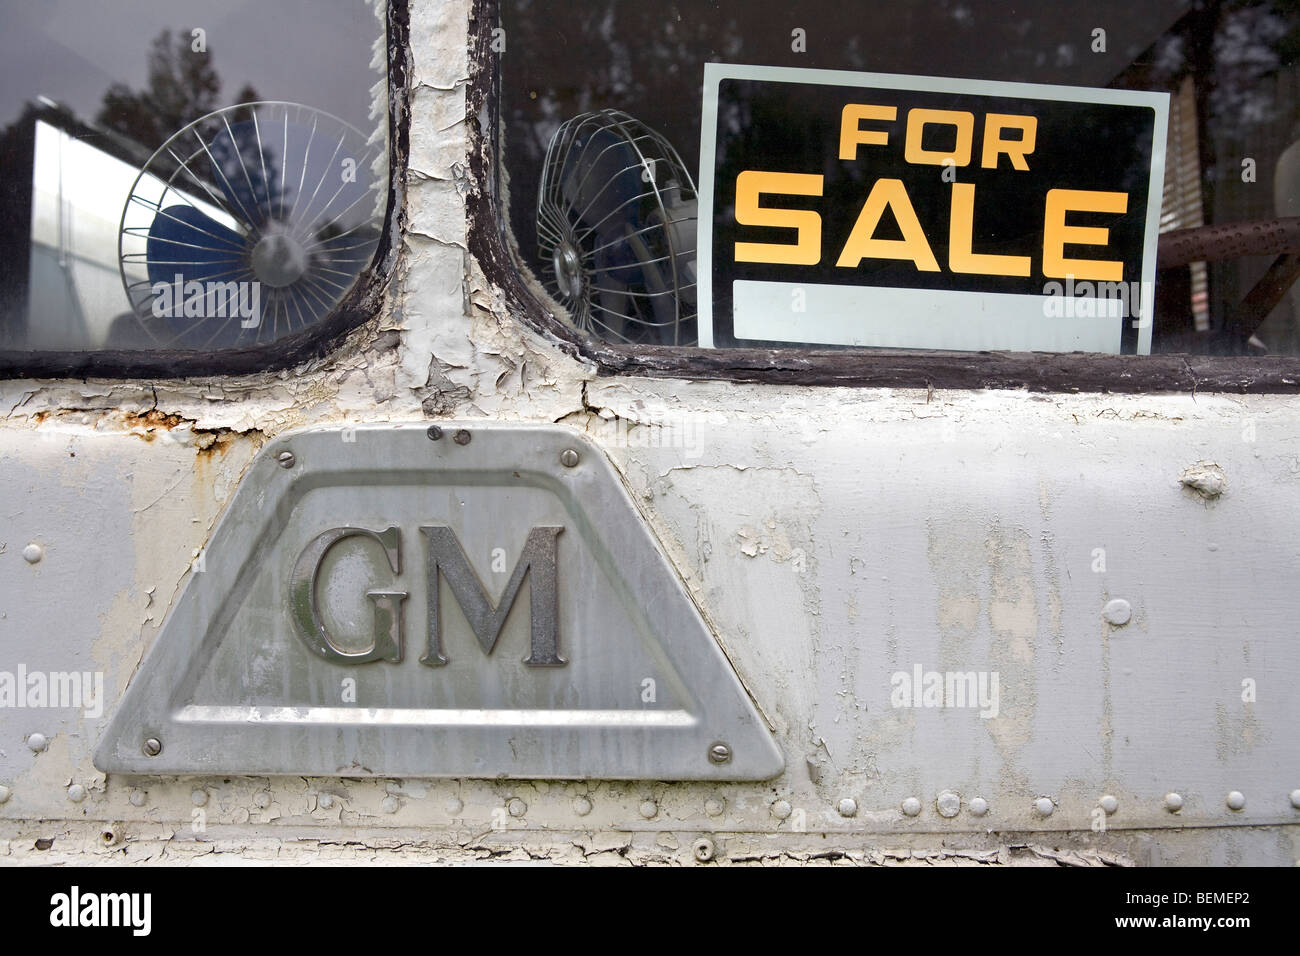 For sale sign on an old bus - Stock Image